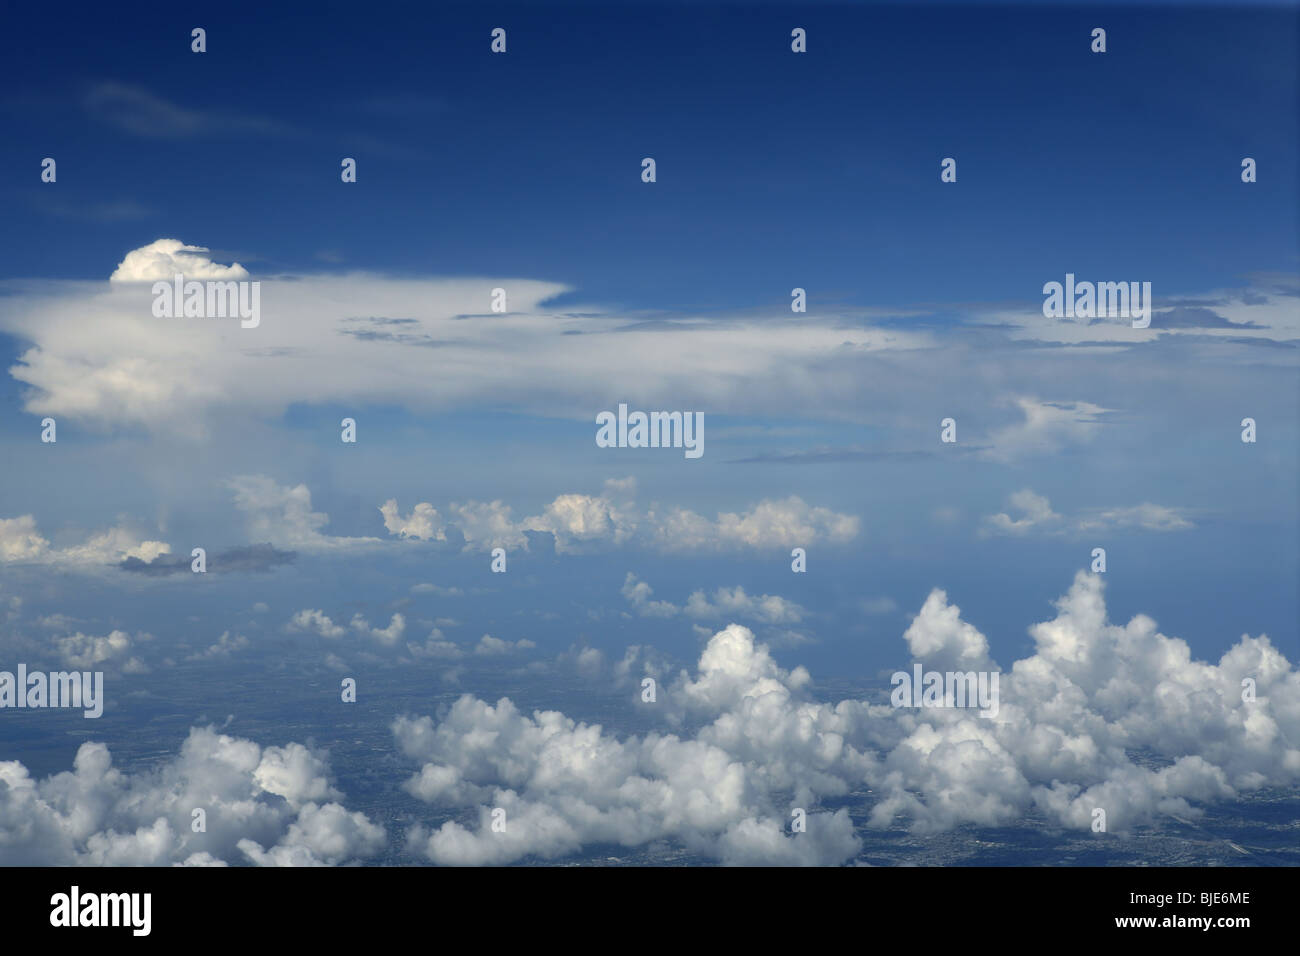 Blue sky view from aircraft airplane and white clouds - Stock Image